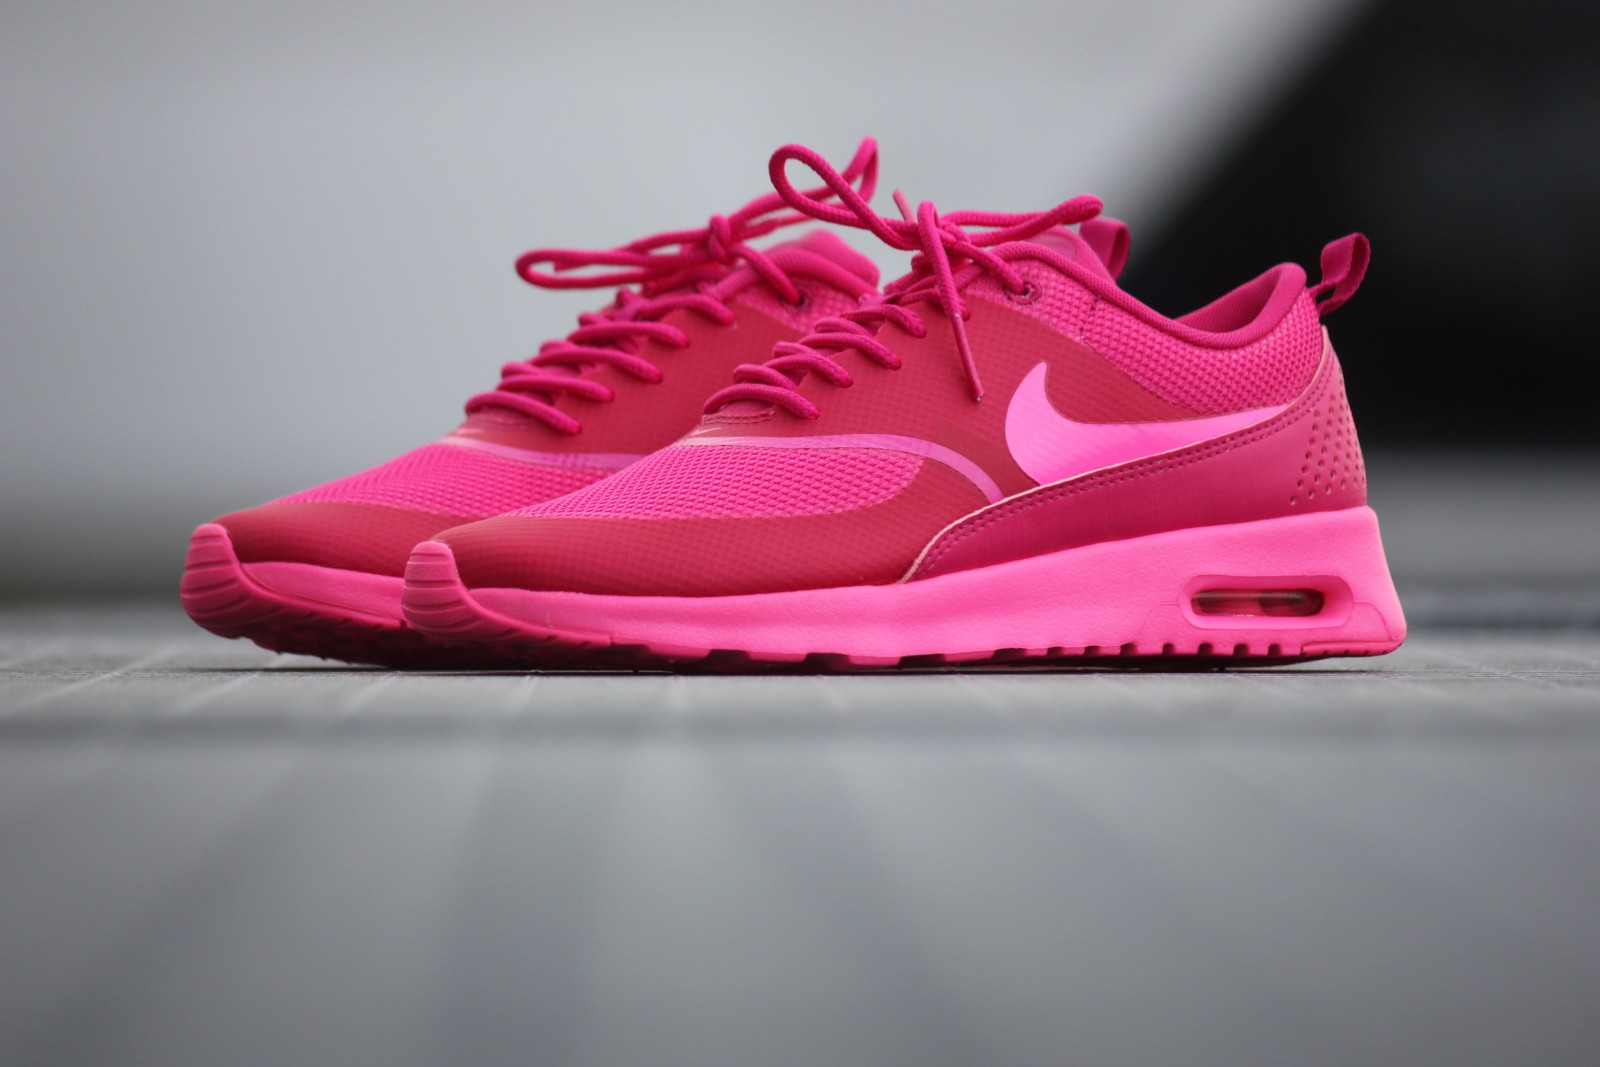 nike air max thea pink pow 599409 604. Black Bedroom Furniture Sets. Home Design Ideas